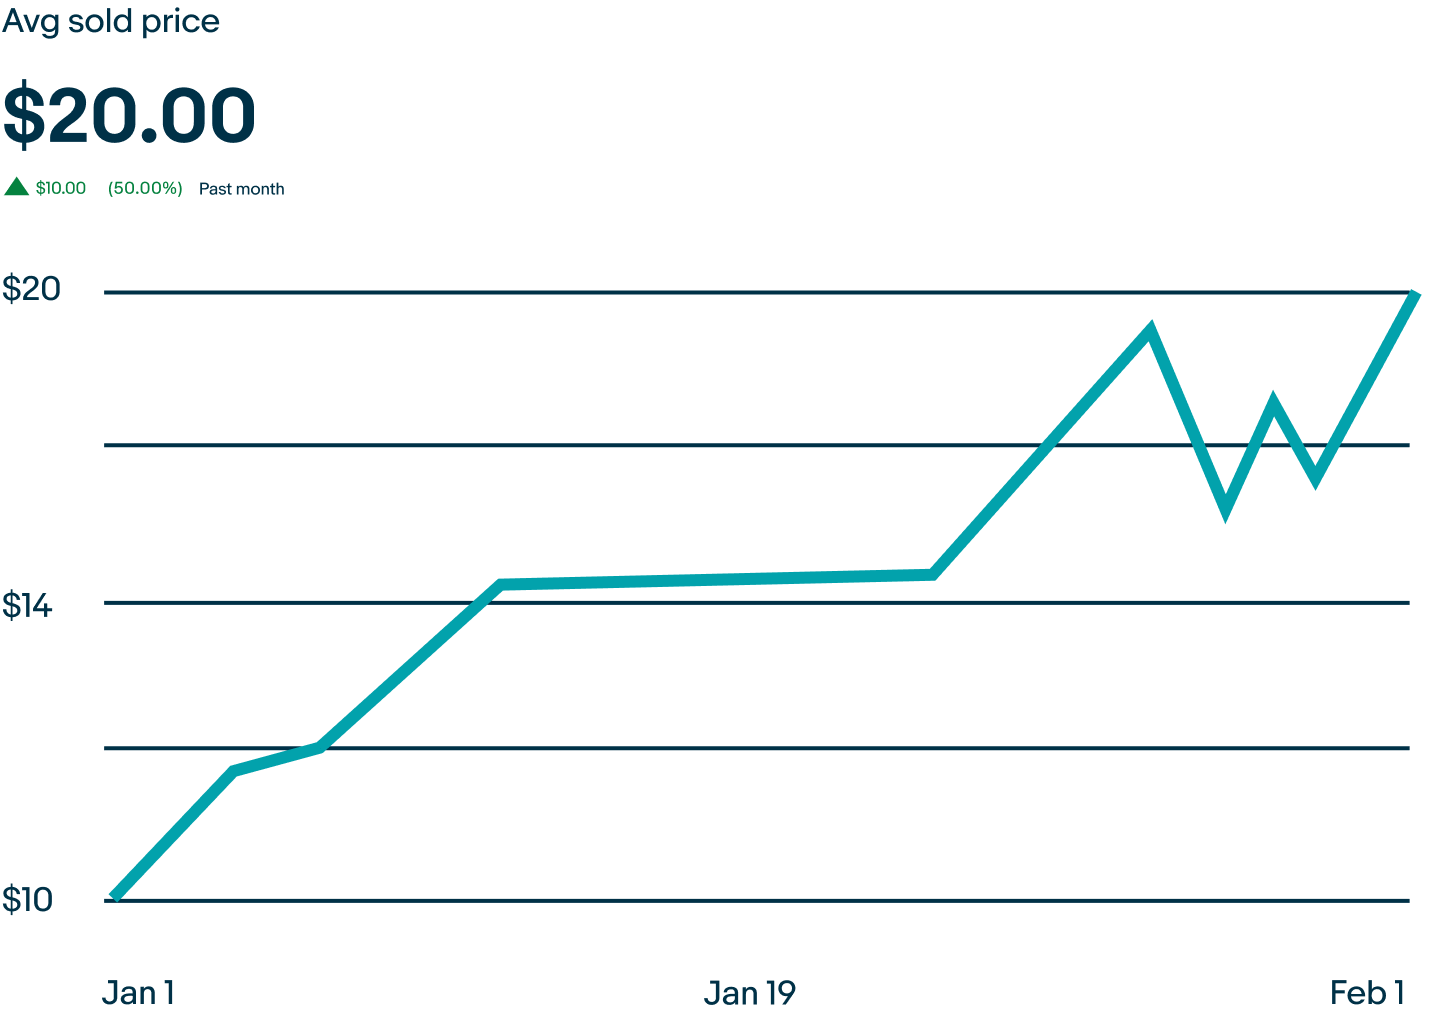 Line graph indicating the increasing average sold price of the Mike Trout baseball card, from $10 to $20.